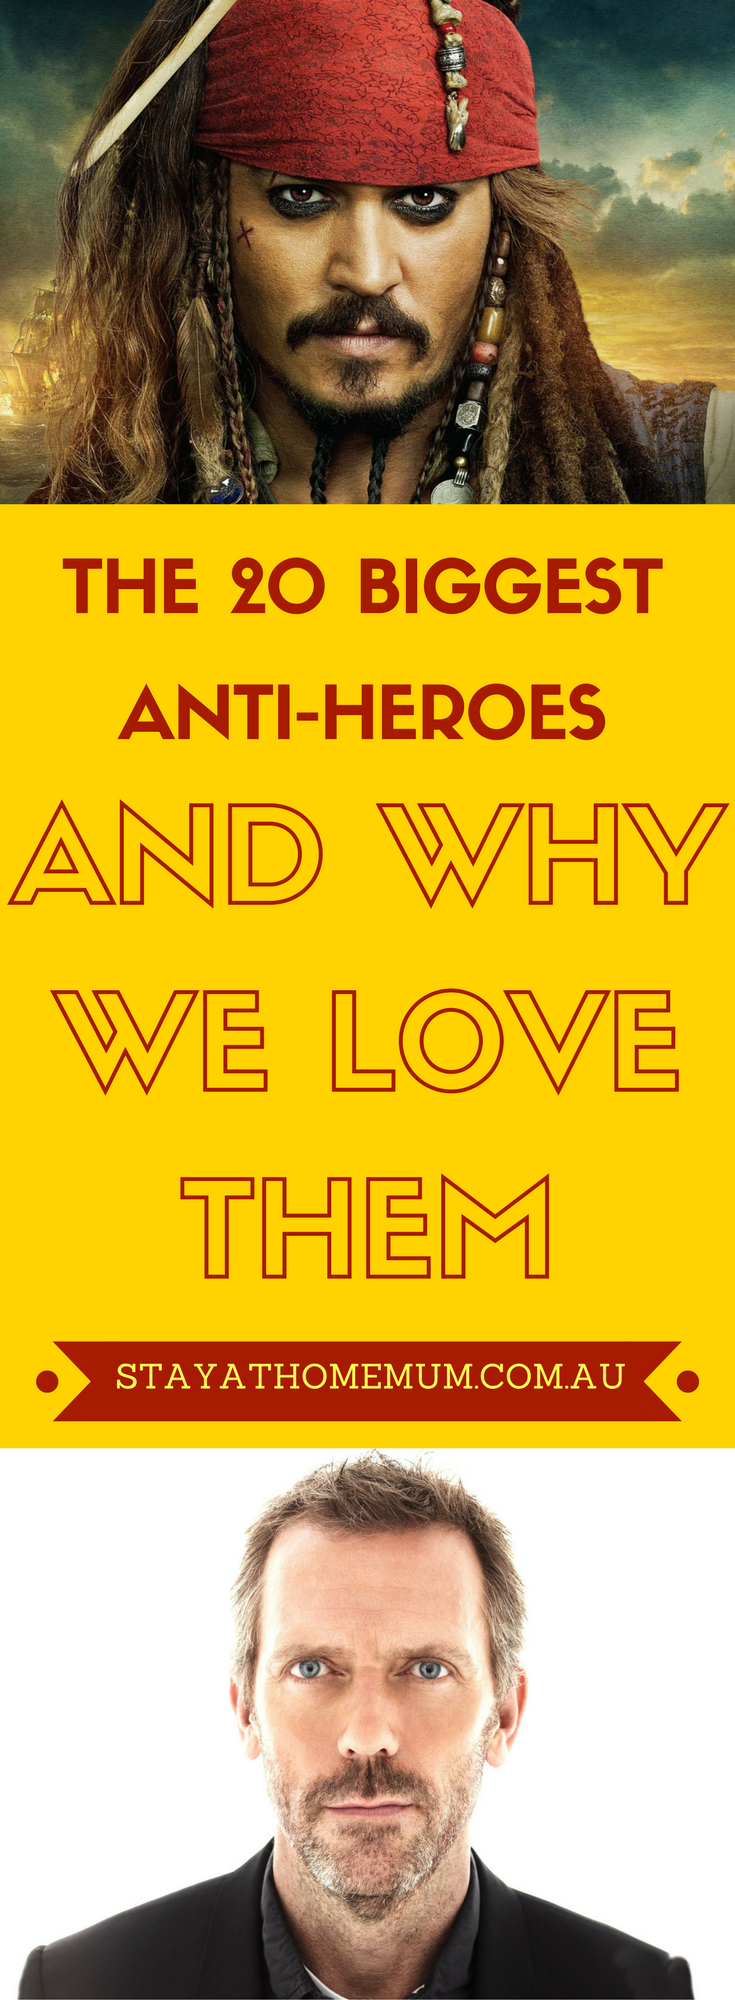 The 20 Biggest Anti-Heroes and Why We Love Them